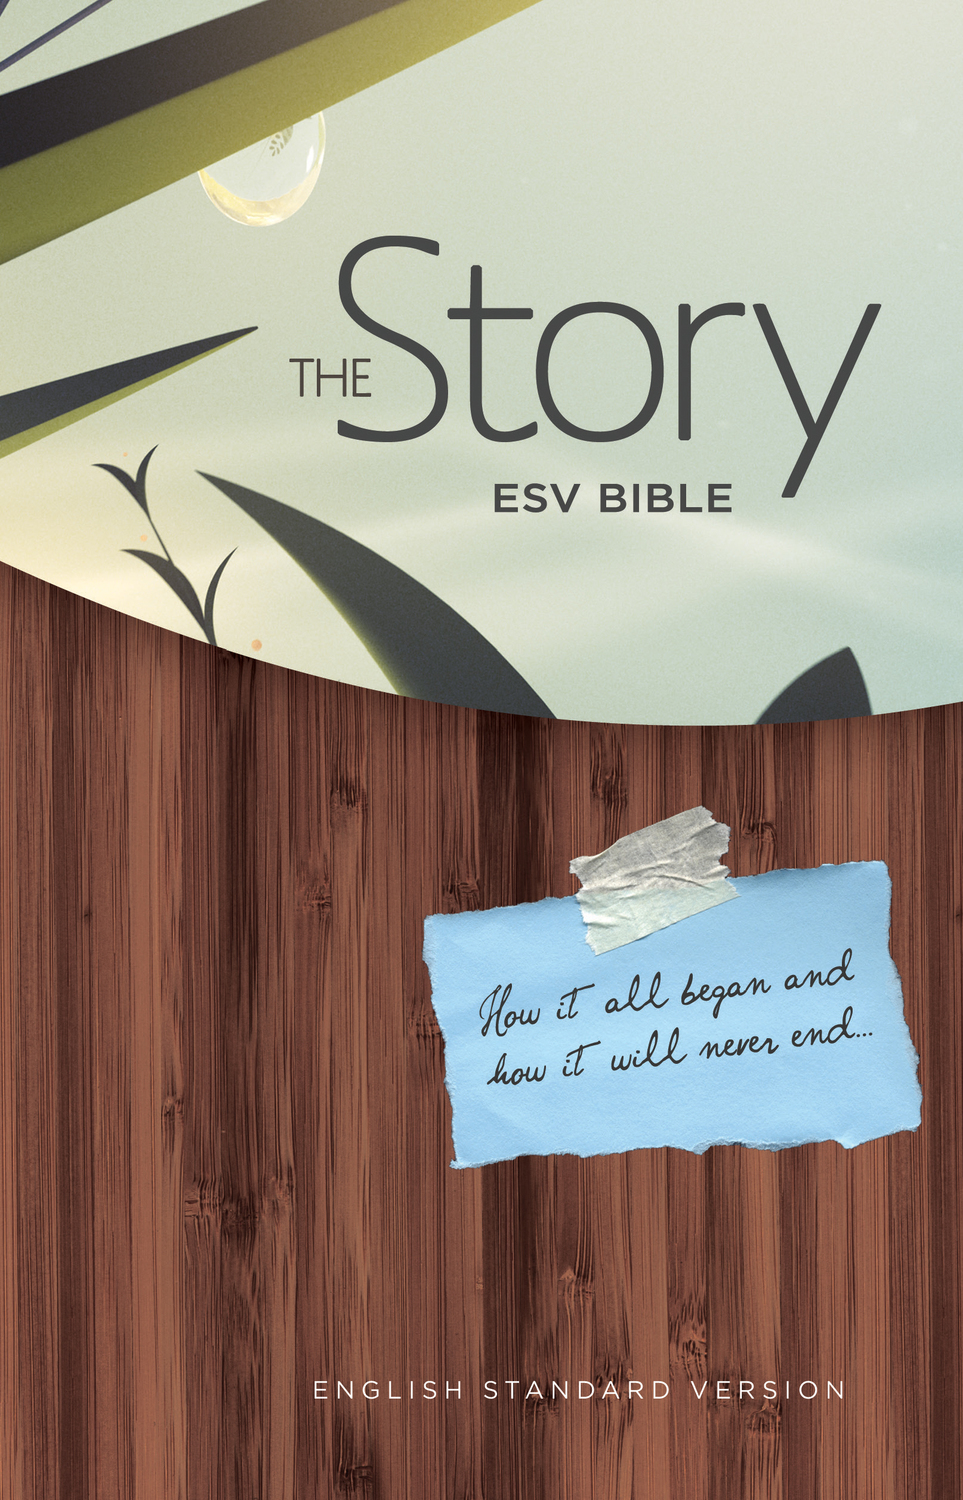 The Story ESV Bible